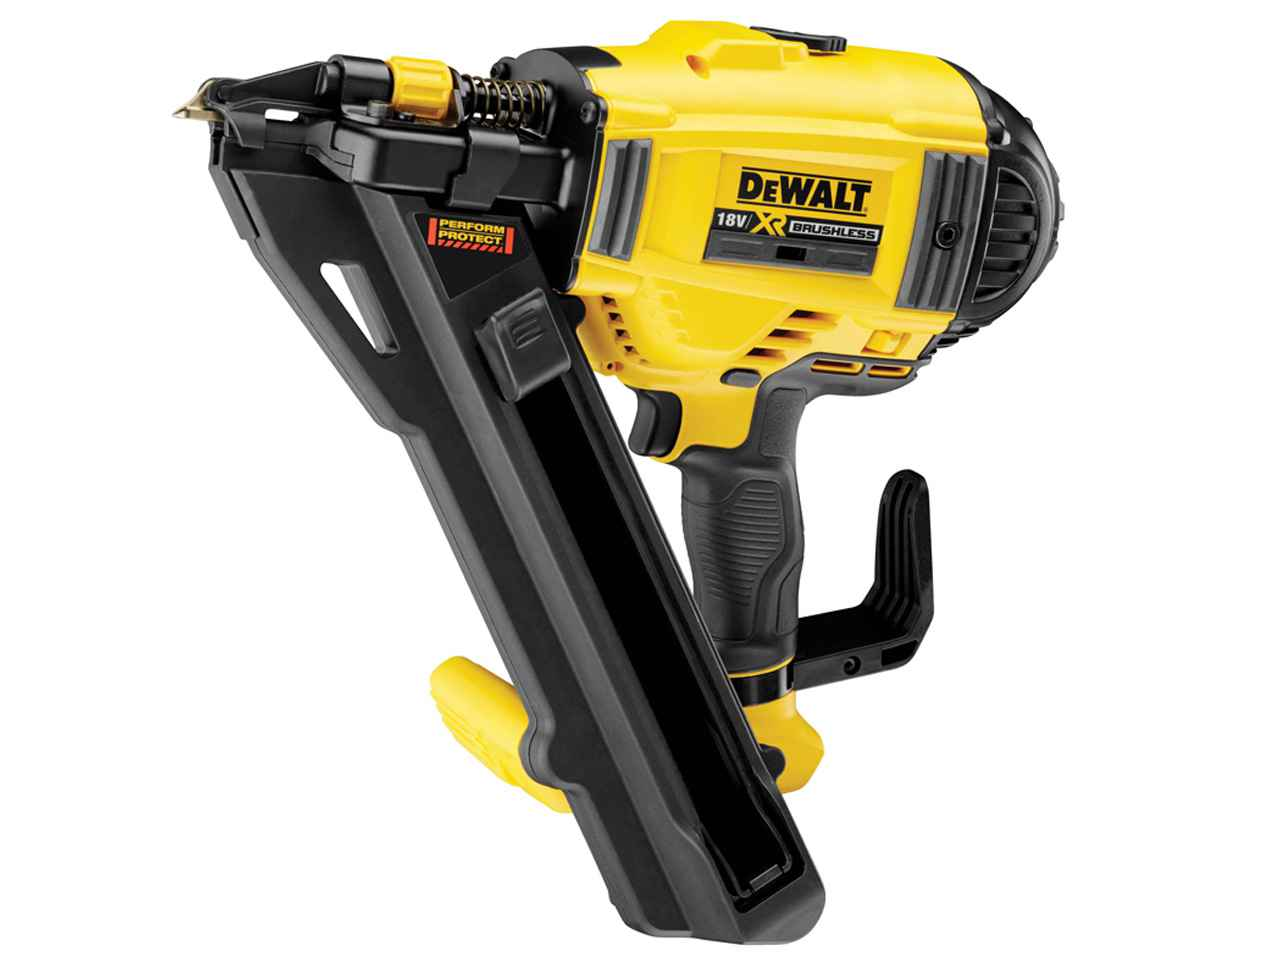 dewalt dcn694n xj 18v xr li ion positive placement nailer. Black Bedroom Furniture Sets. Home Design Ideas